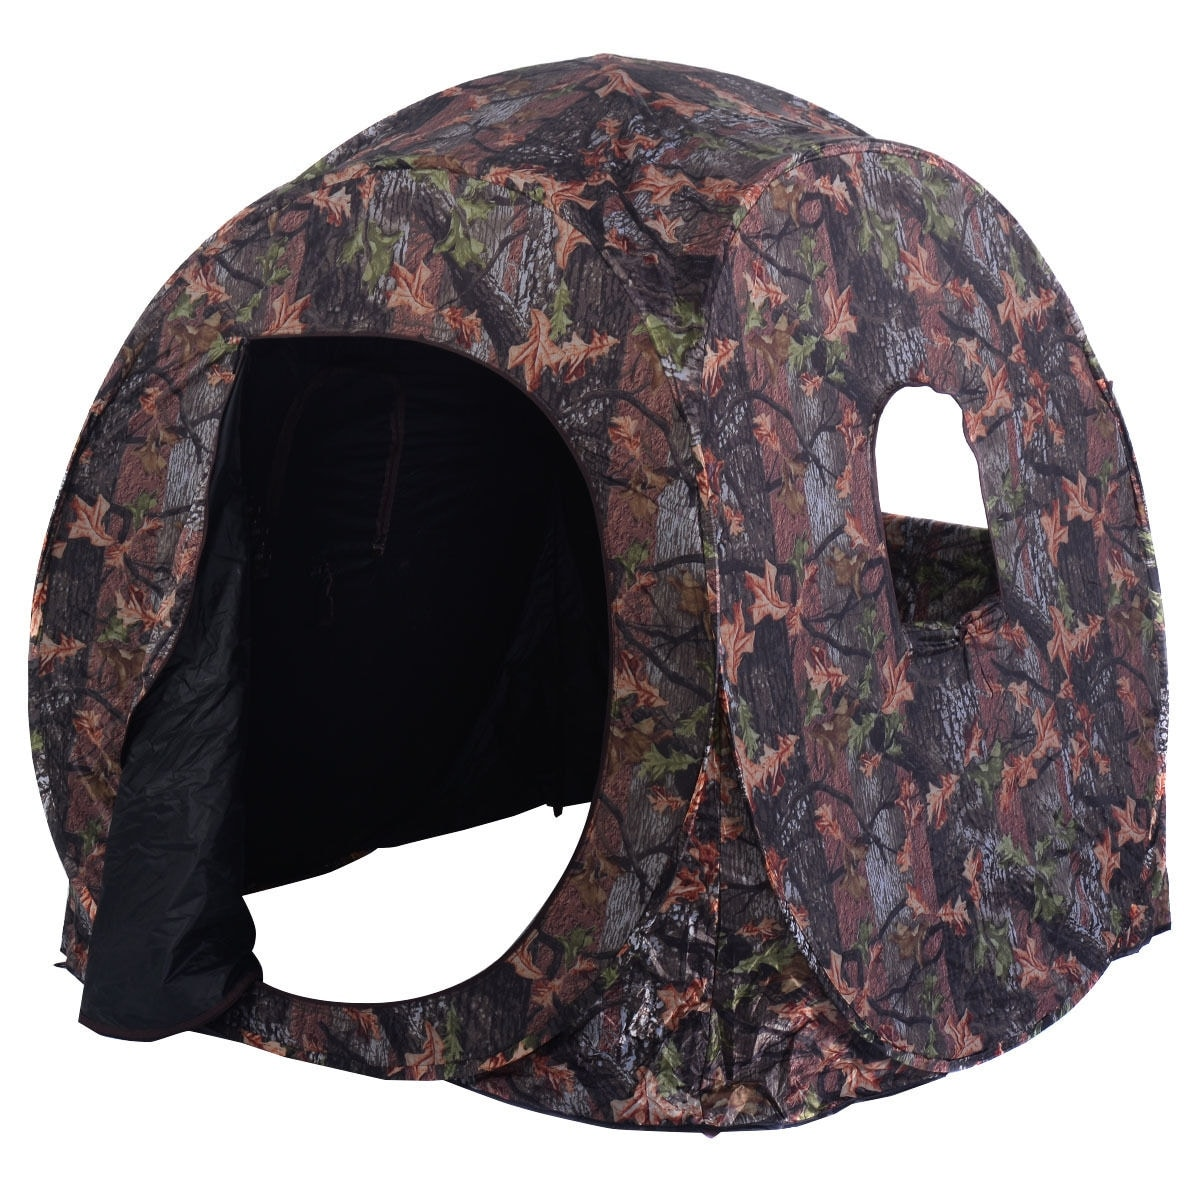 experience s natural hunting deer blind elevated worldaugie blinds and pop up hunt world adventures the